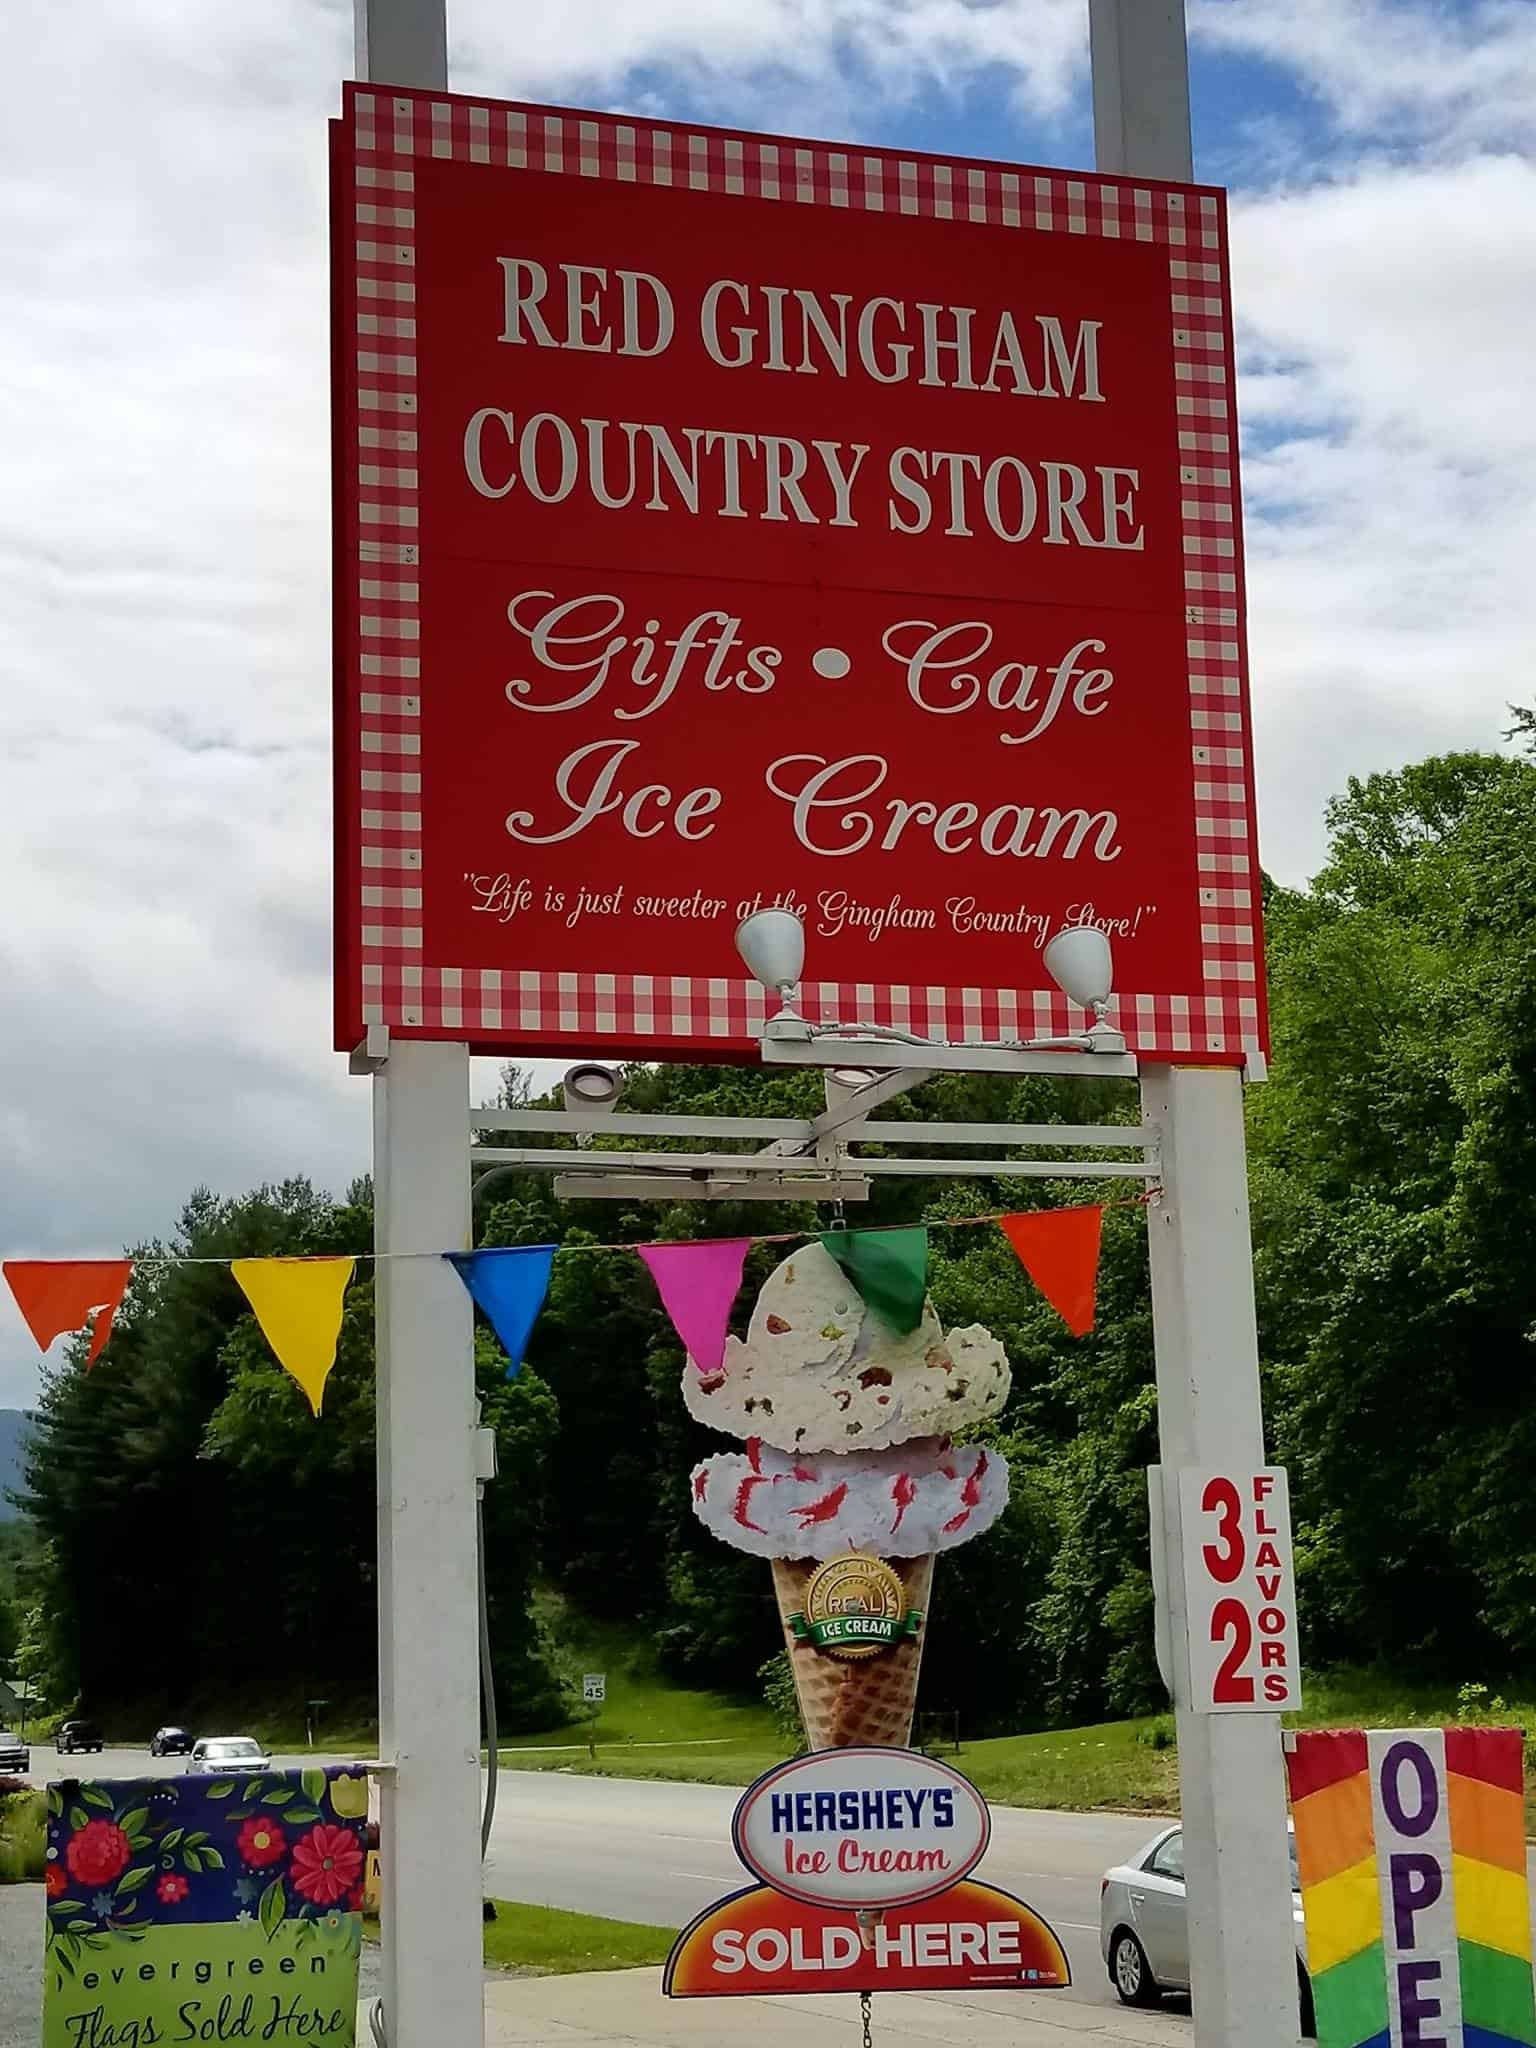 The Red Gingham Store